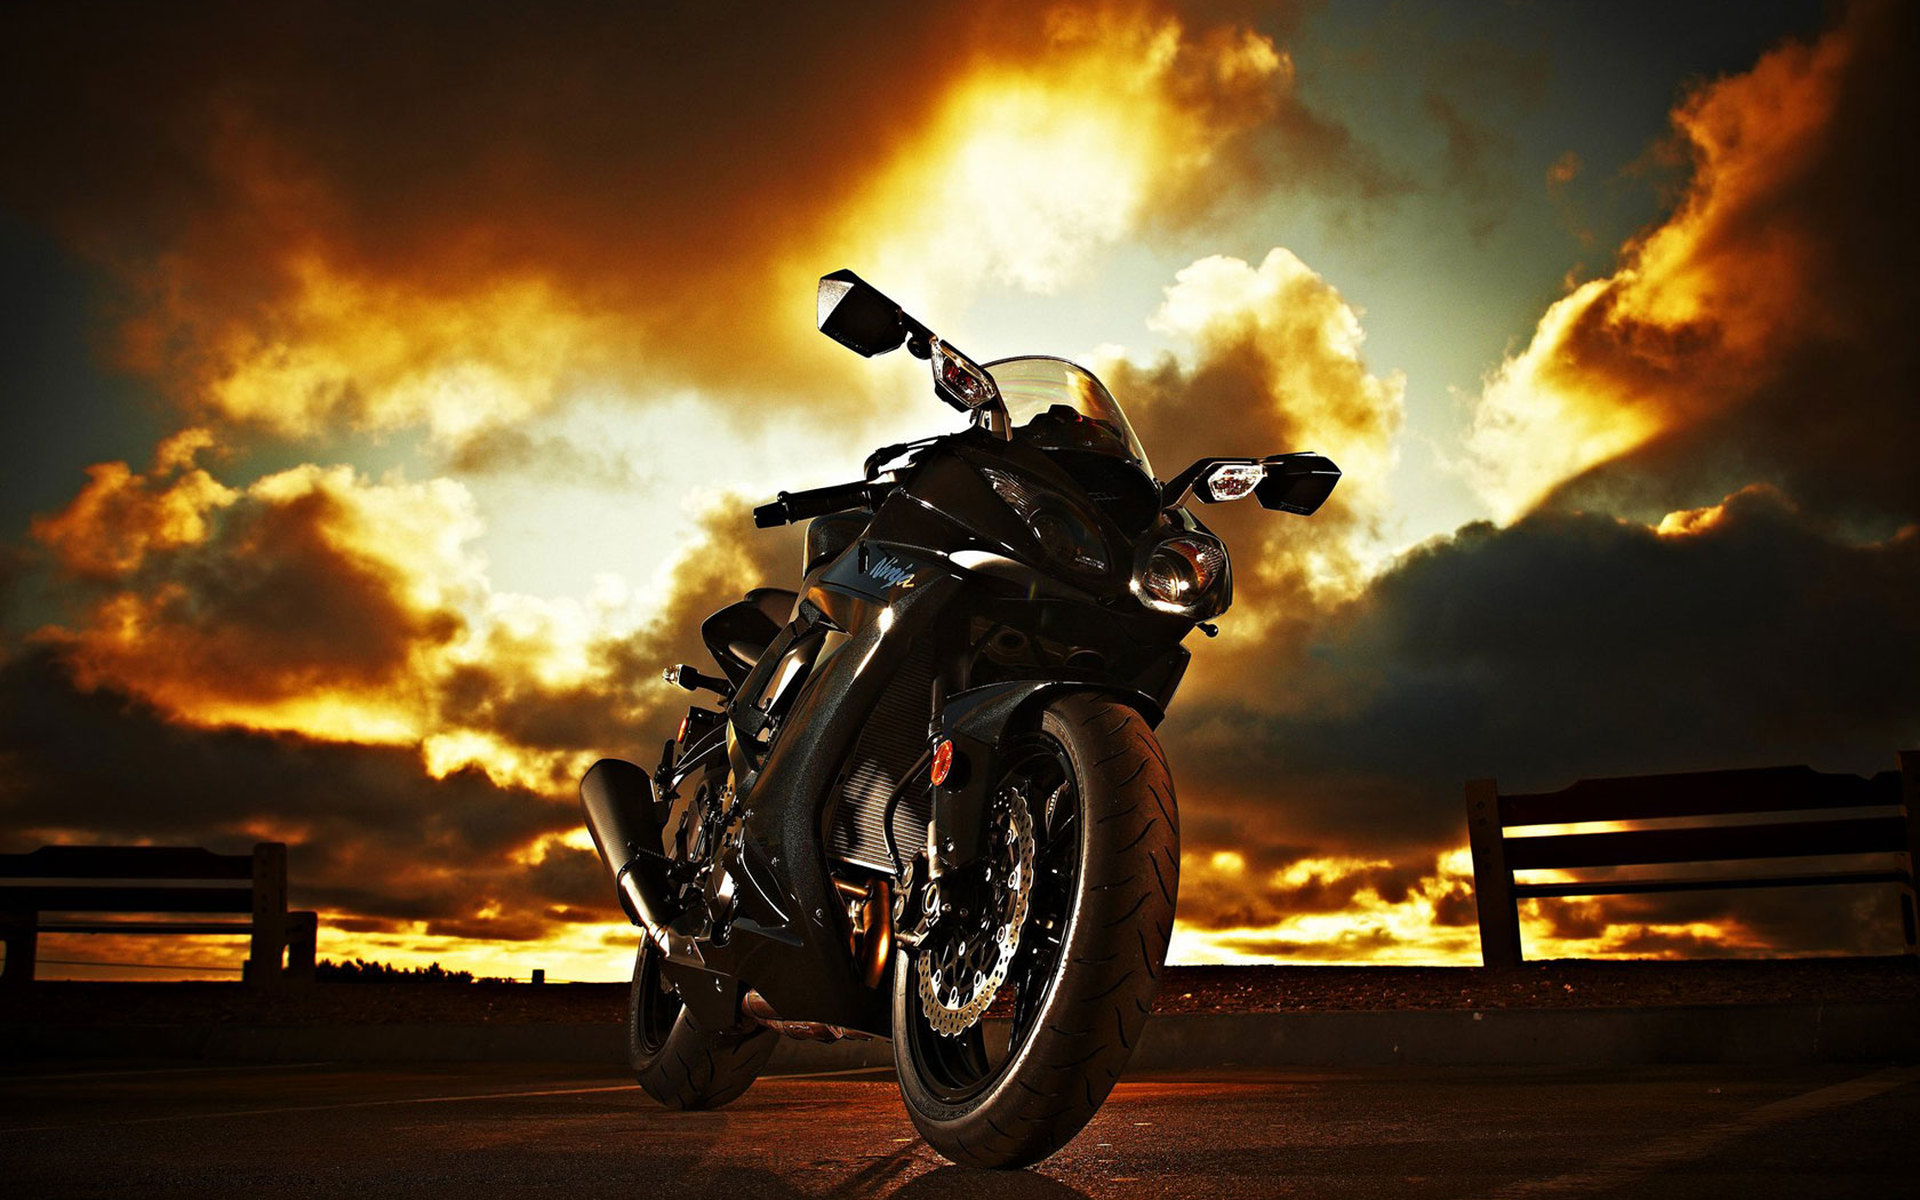 Kawasaki Backgrounds Ninja Wallpapers For Download 1920x1200